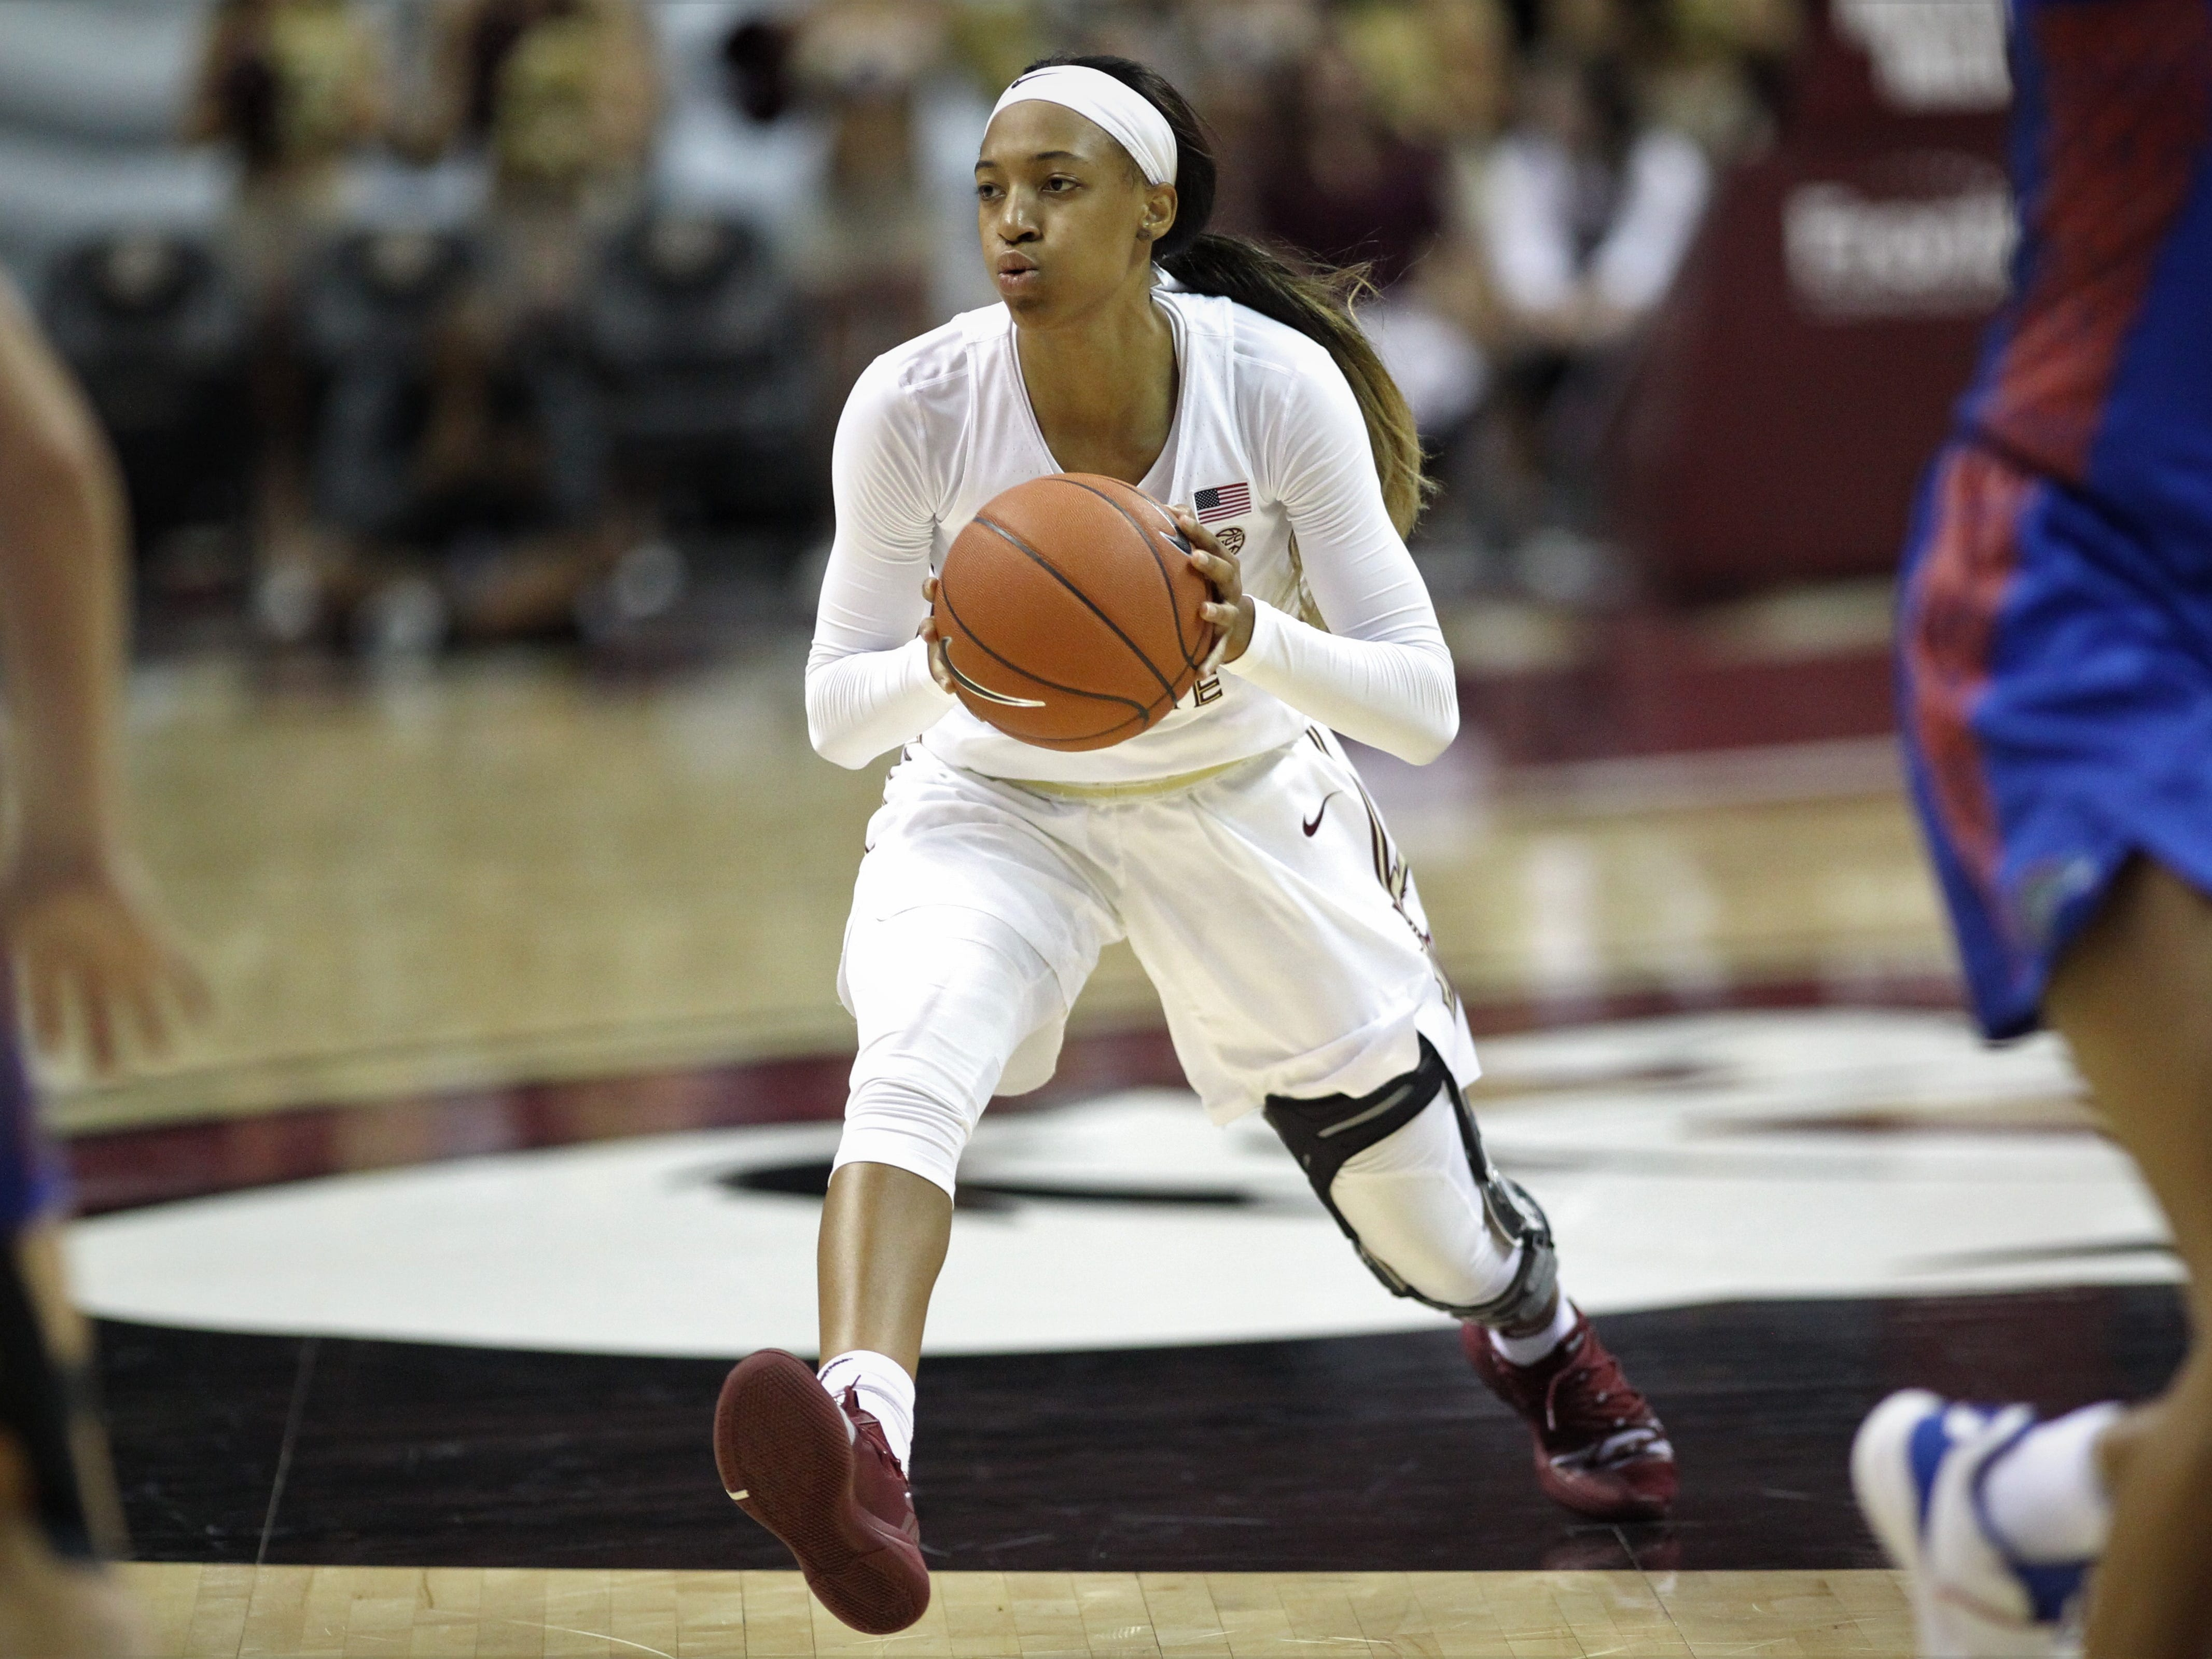 Florida State freshman guard Amaya Brown makes a pass during the first half of the Seminoles' game against Florida at the Tucker Civic Center on Nov. 11, 2018.